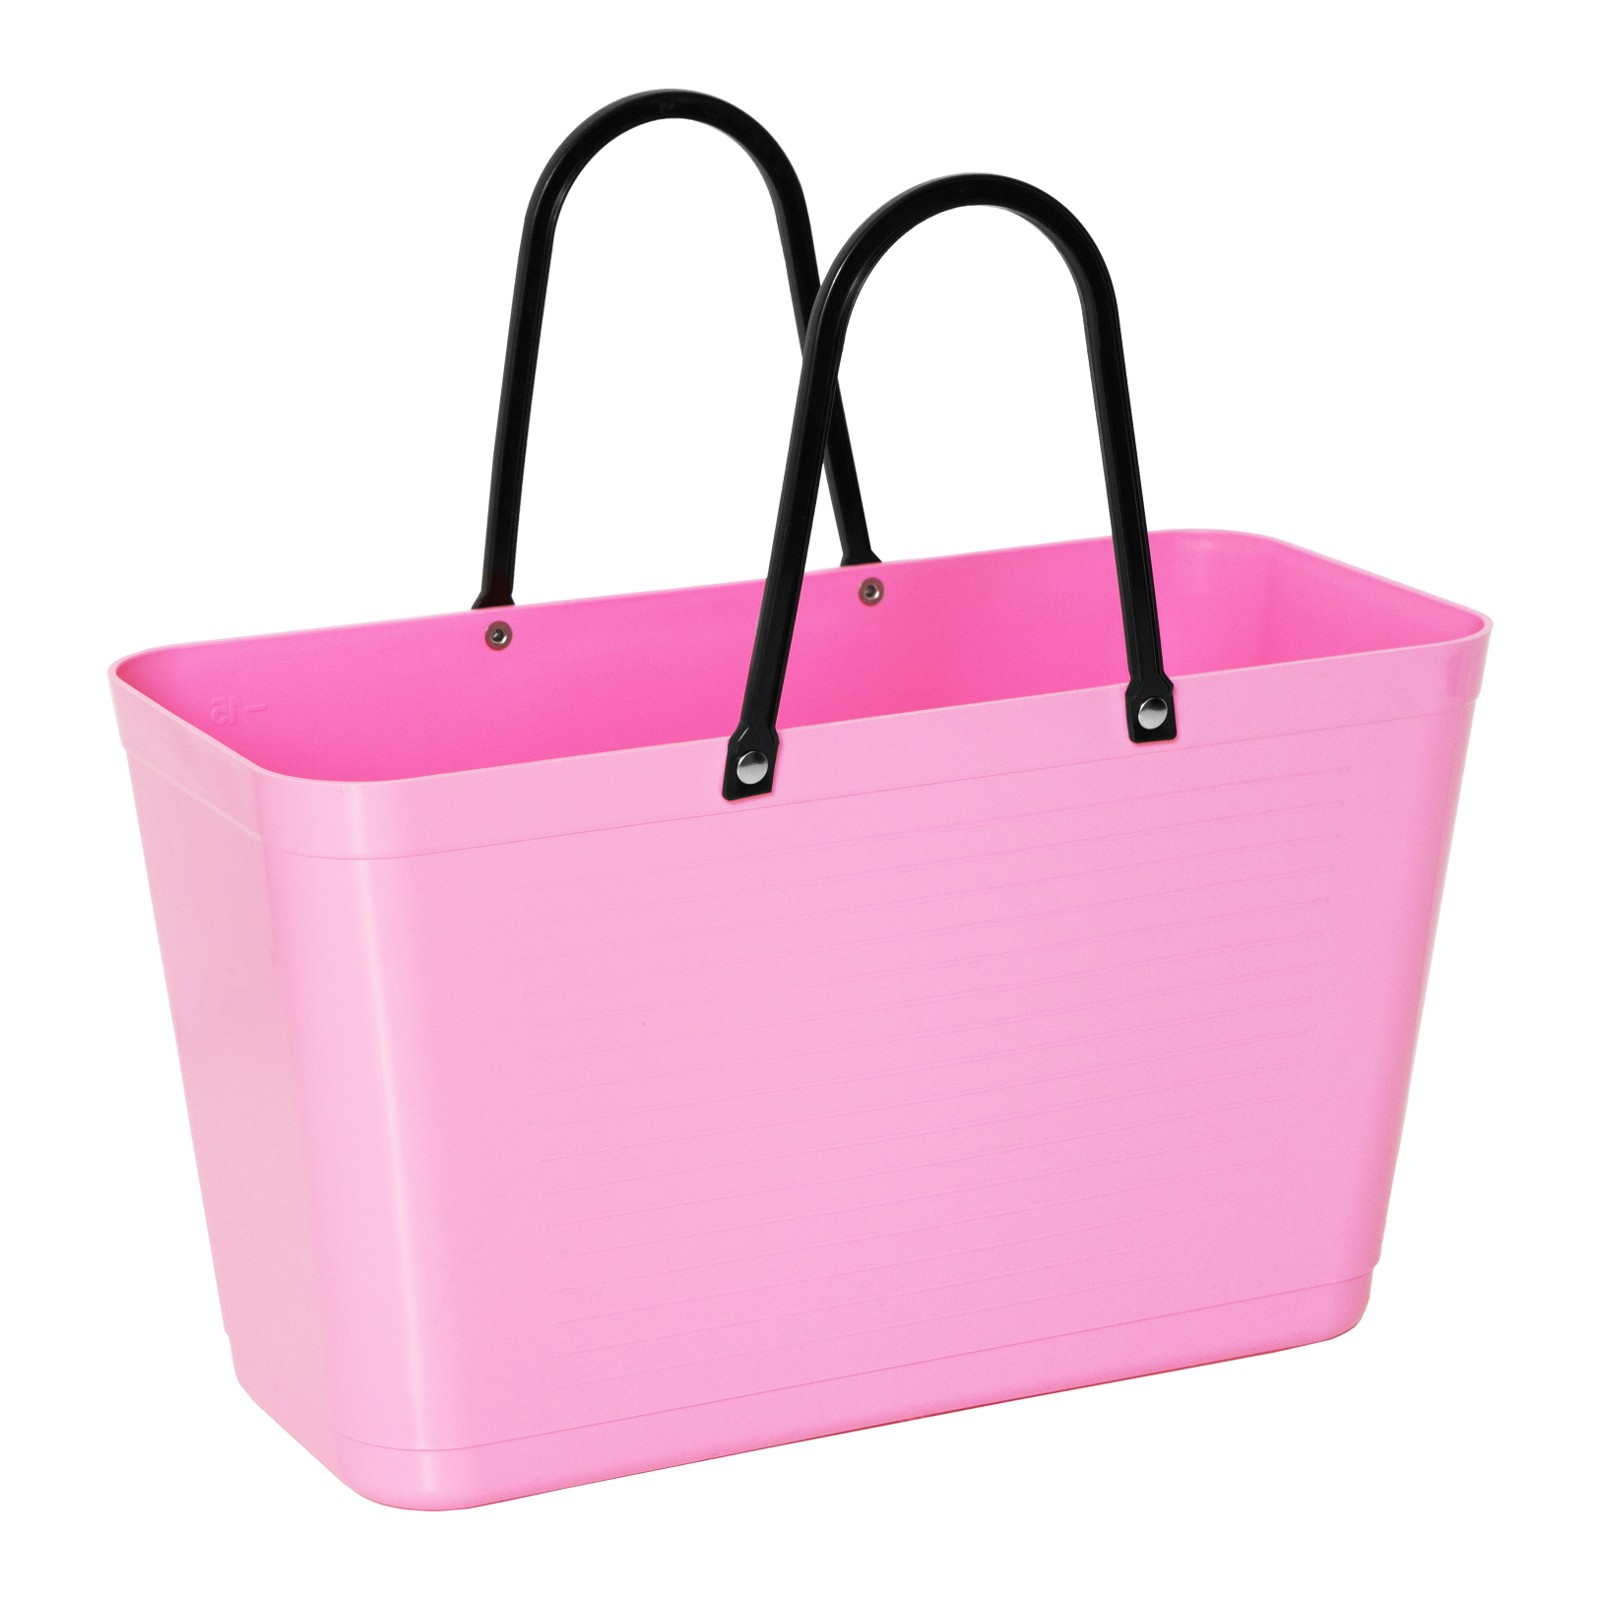 hinza 001-hinza-bag-large-pink